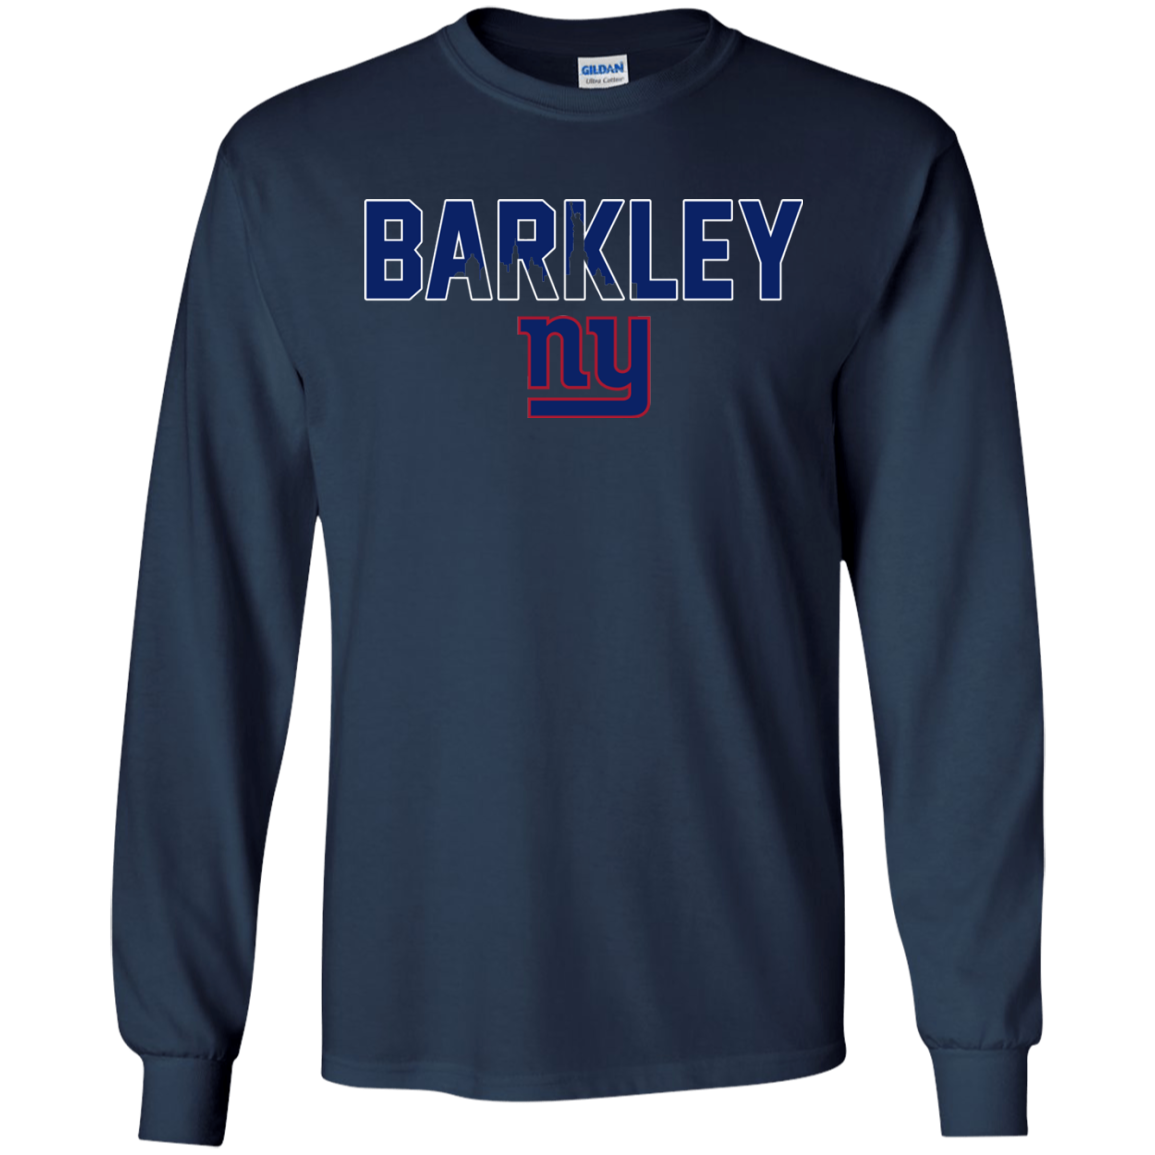 sports shoes 891d0 cbb2e Saquon barkley giants shirt Ultra Cotton shirt Men